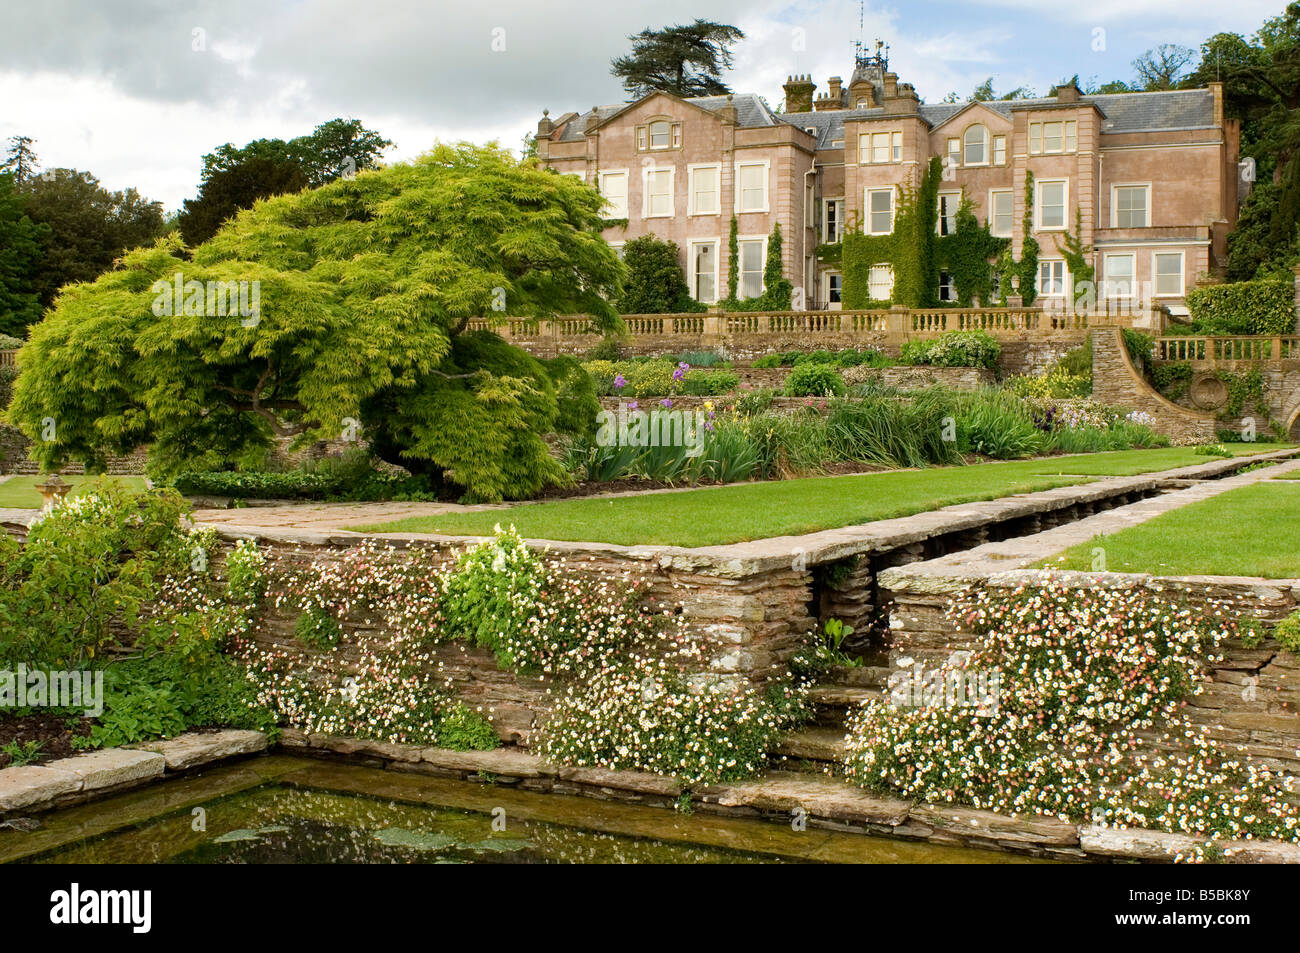 Hestercombe garden designed by gertrude jekyll and edwin lutyens stock photo royalty free for Gertrude jekyll gardens to visit